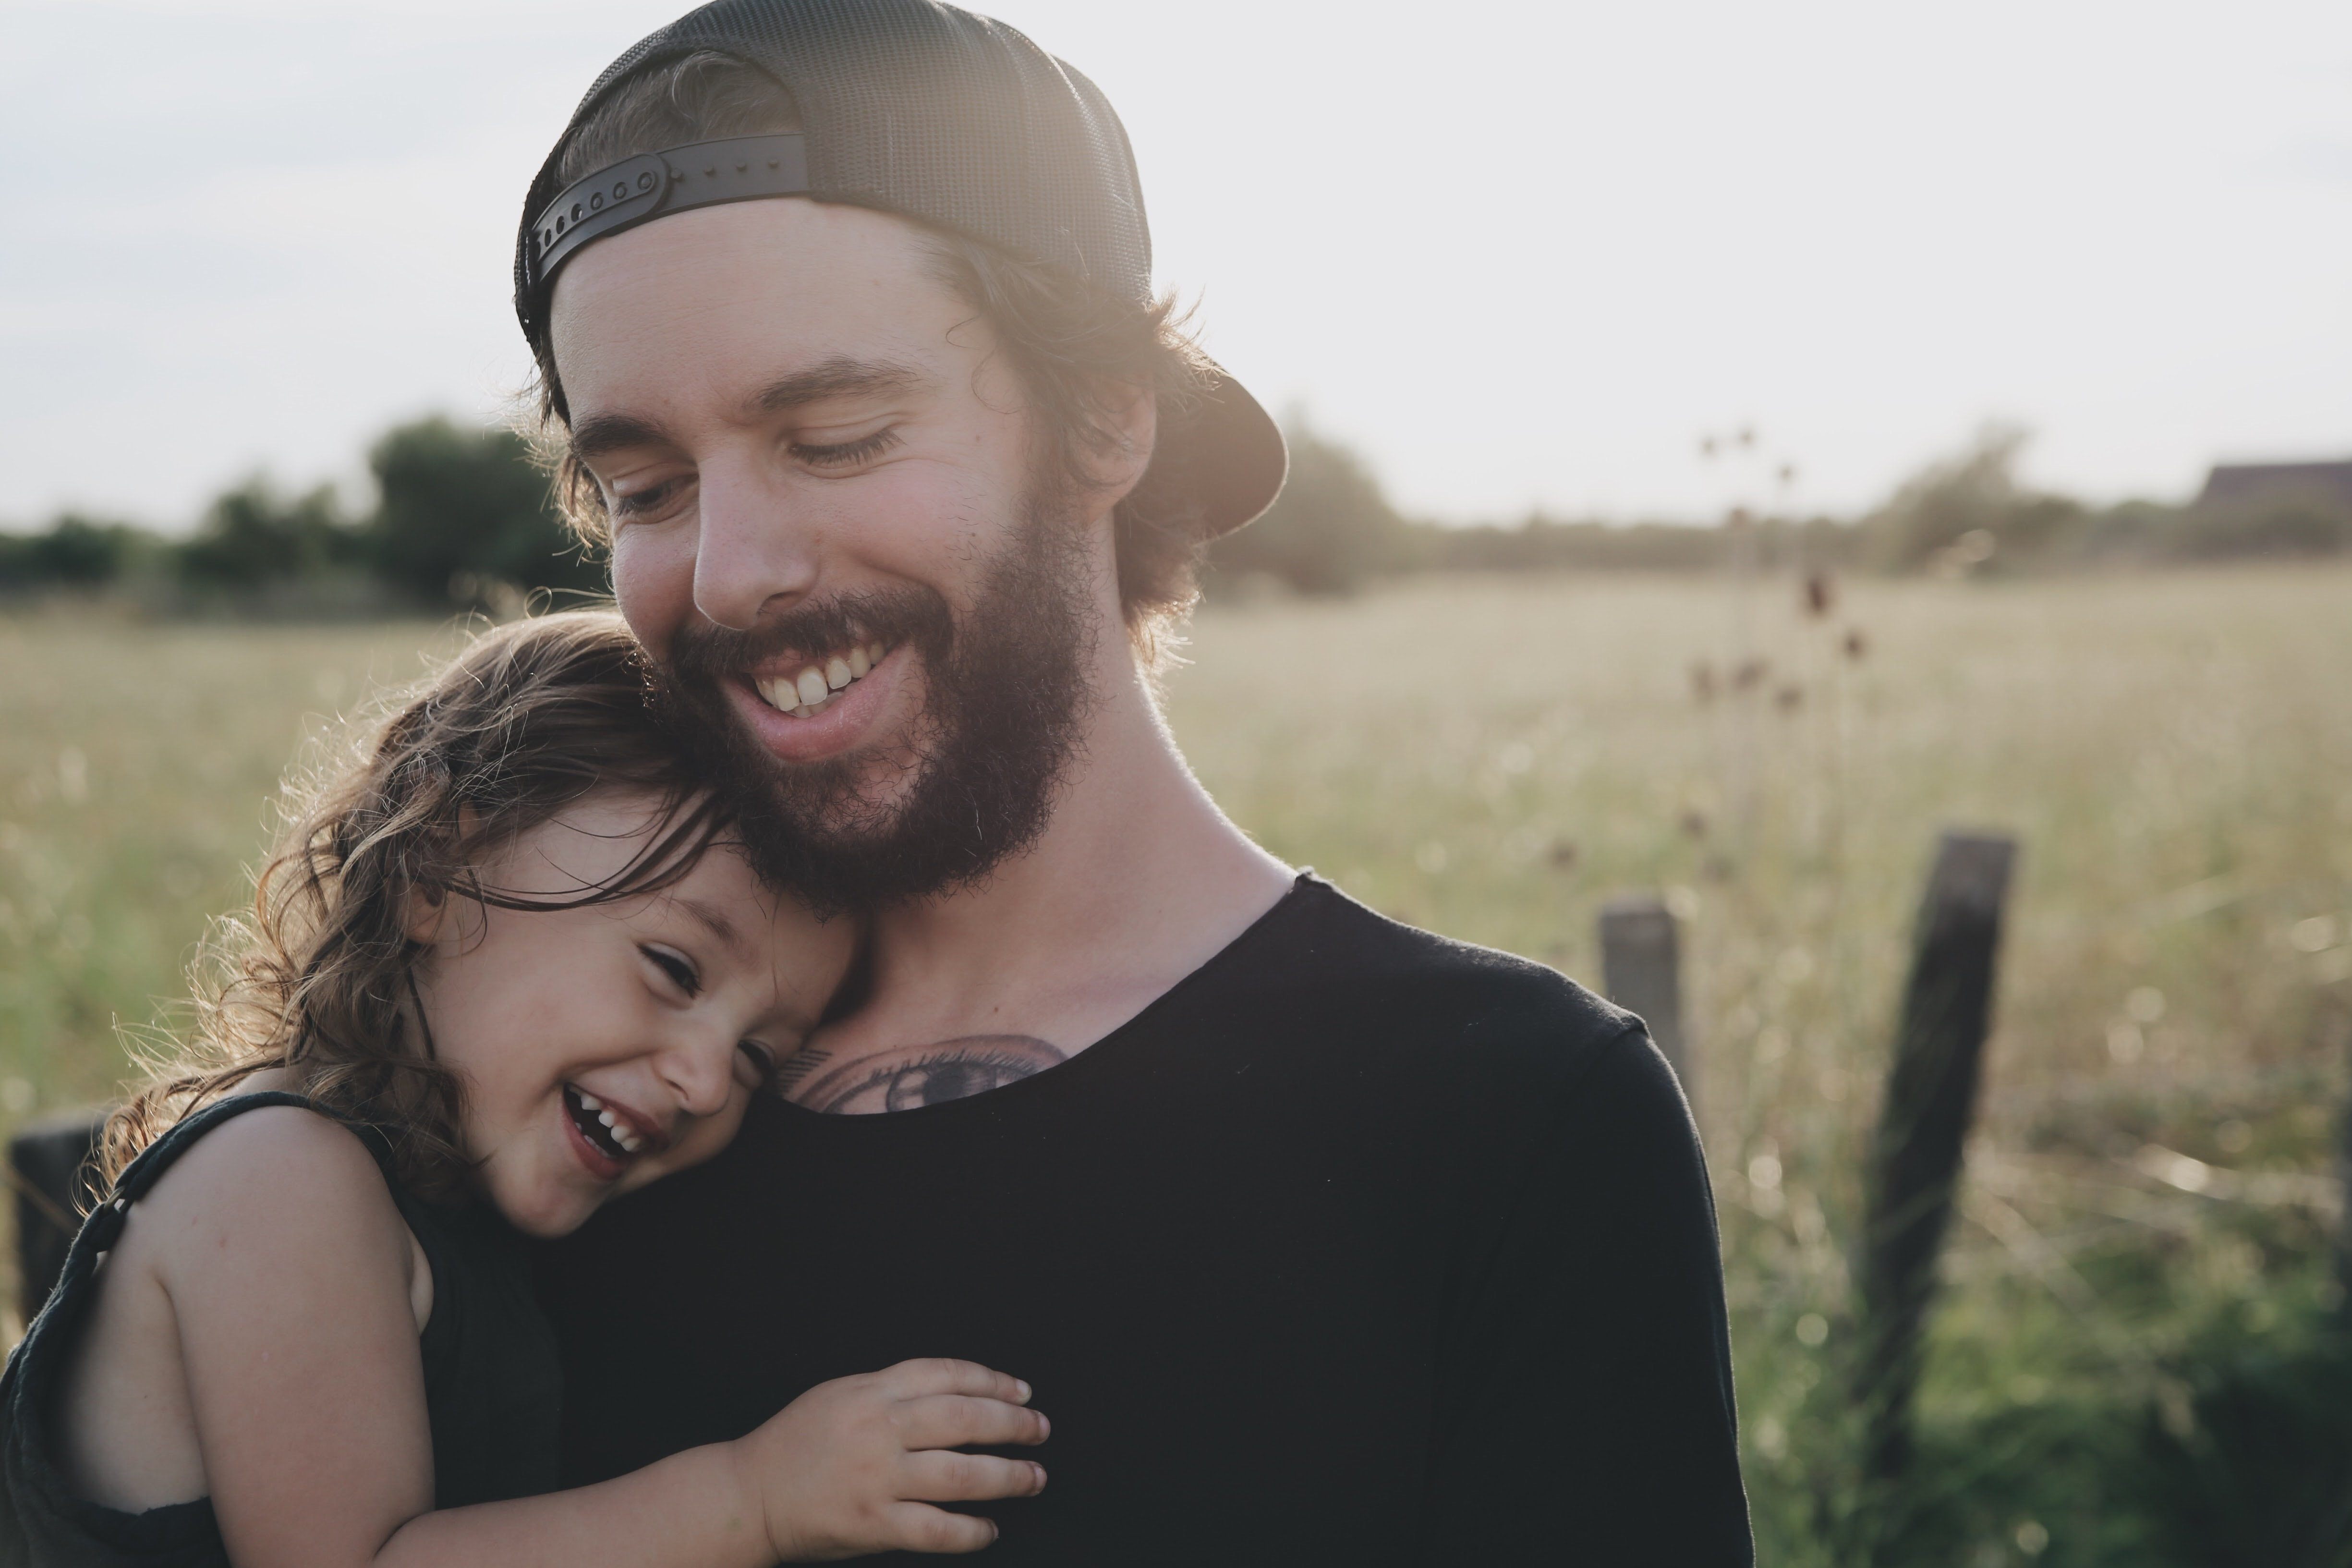 Man with a beard, tattoo and black shirt holds a laughing girl in a field in the sun